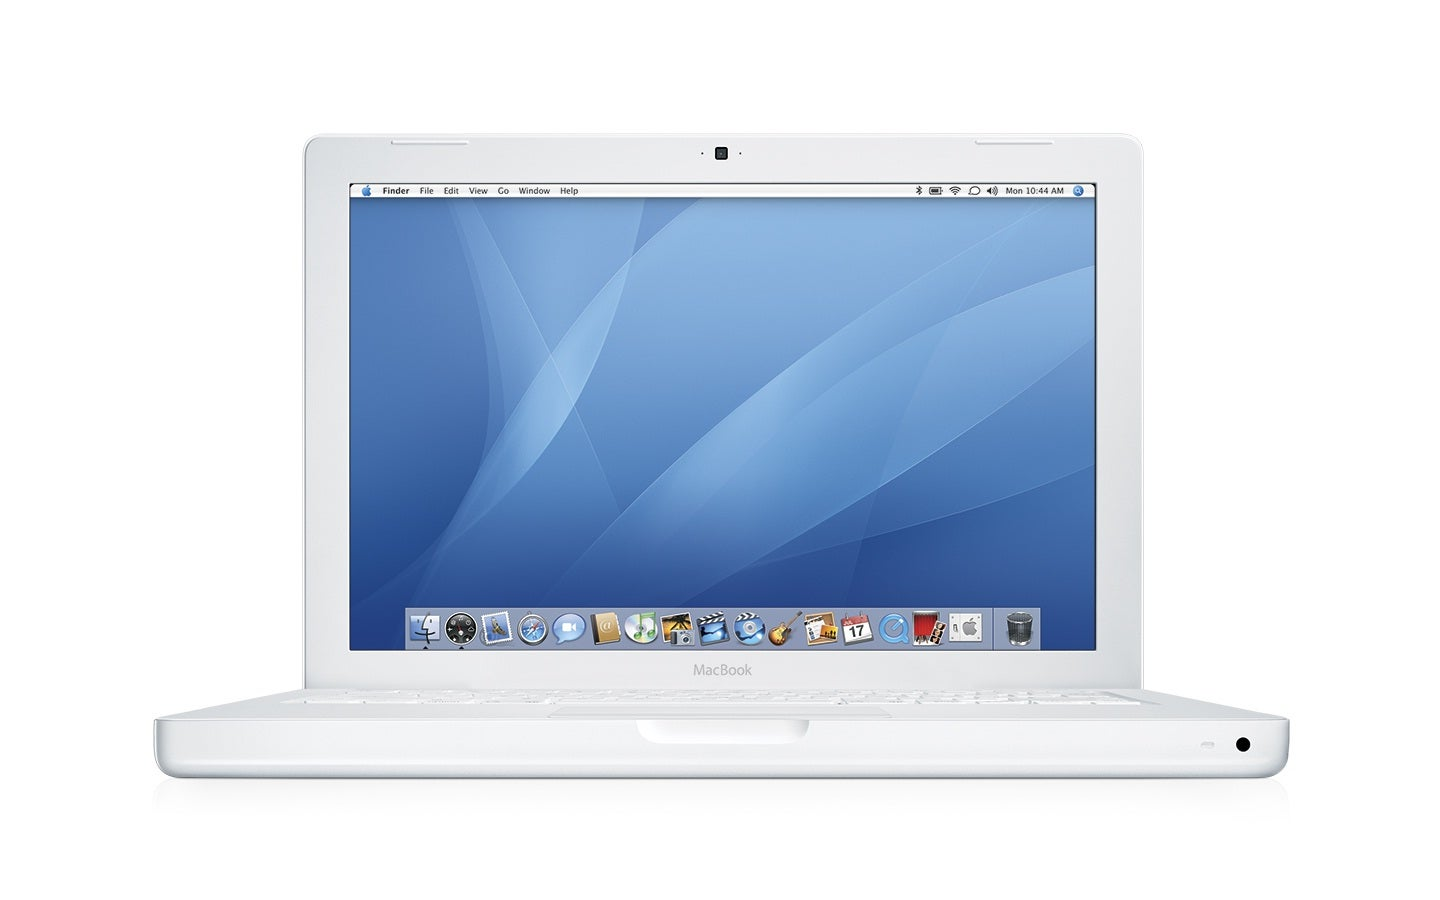 Apple MacBook 2GHz 80GB 13.3-inch White Laptop (Refurbished)